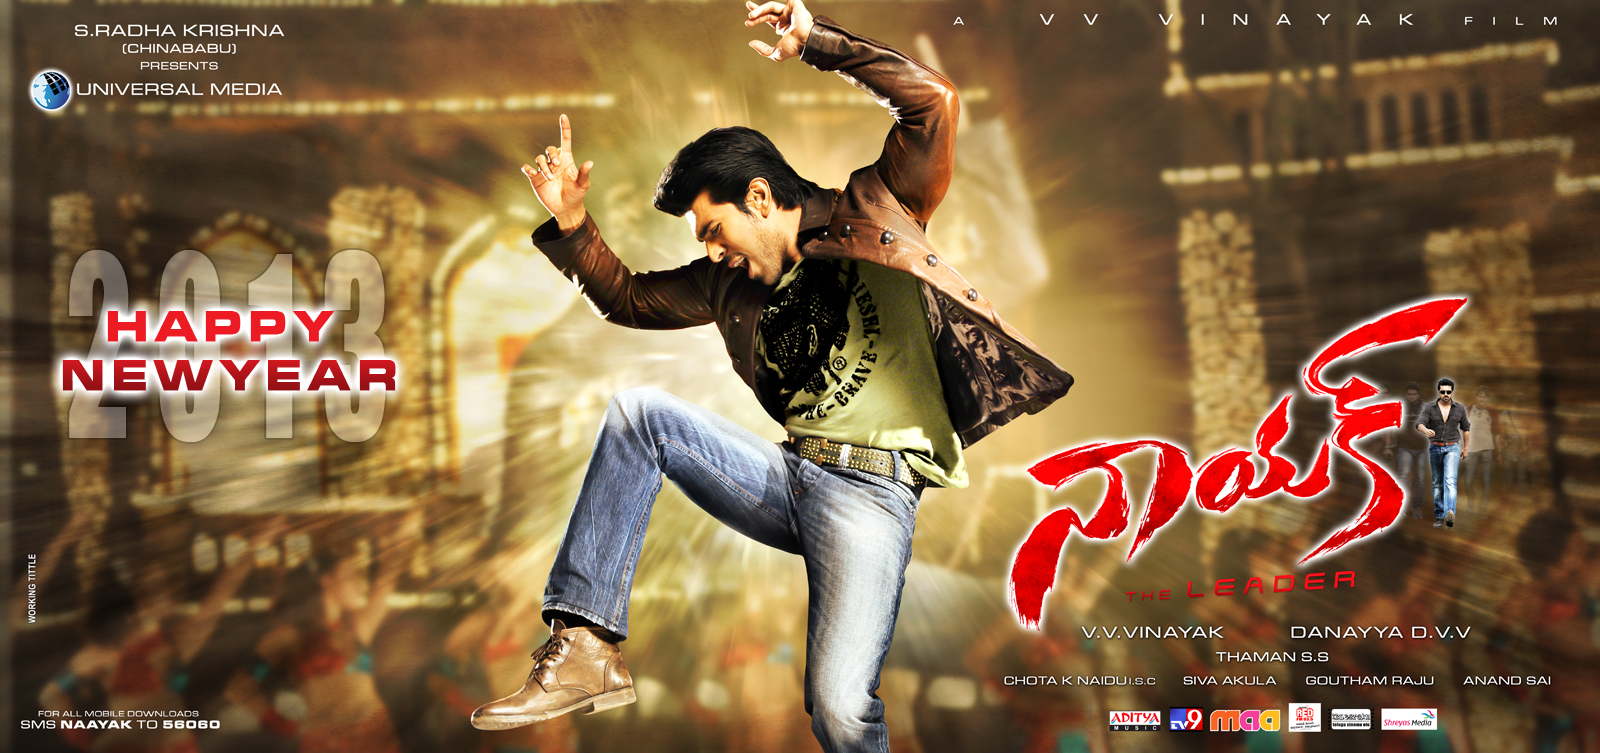 Naayak New Year Special Wallpapers | Tollywoodtv Naayak